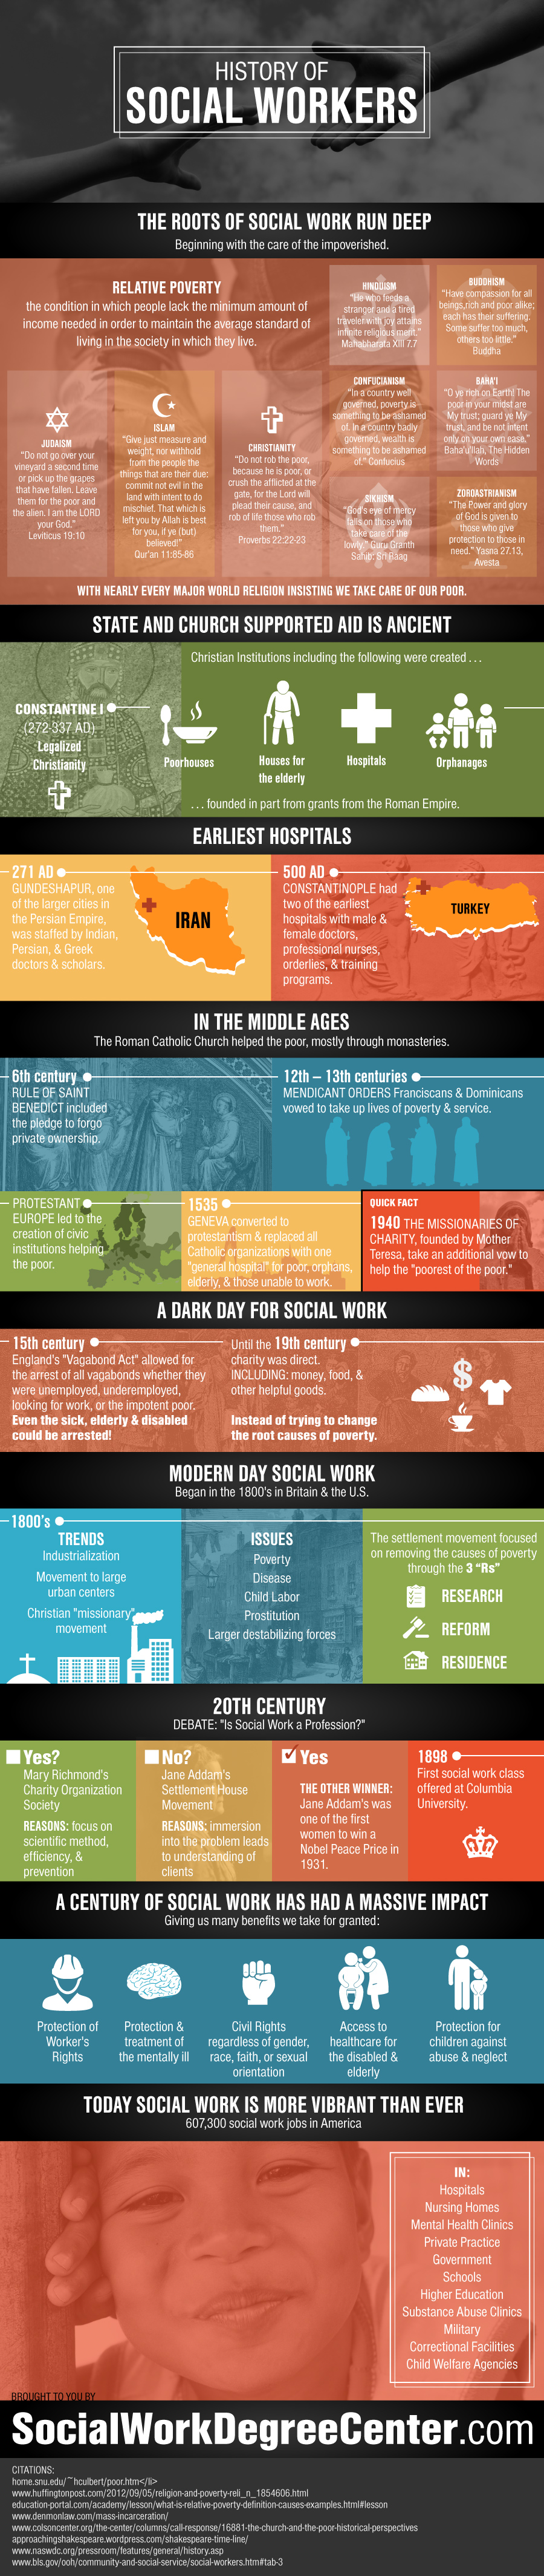 History-of-Social-Workers